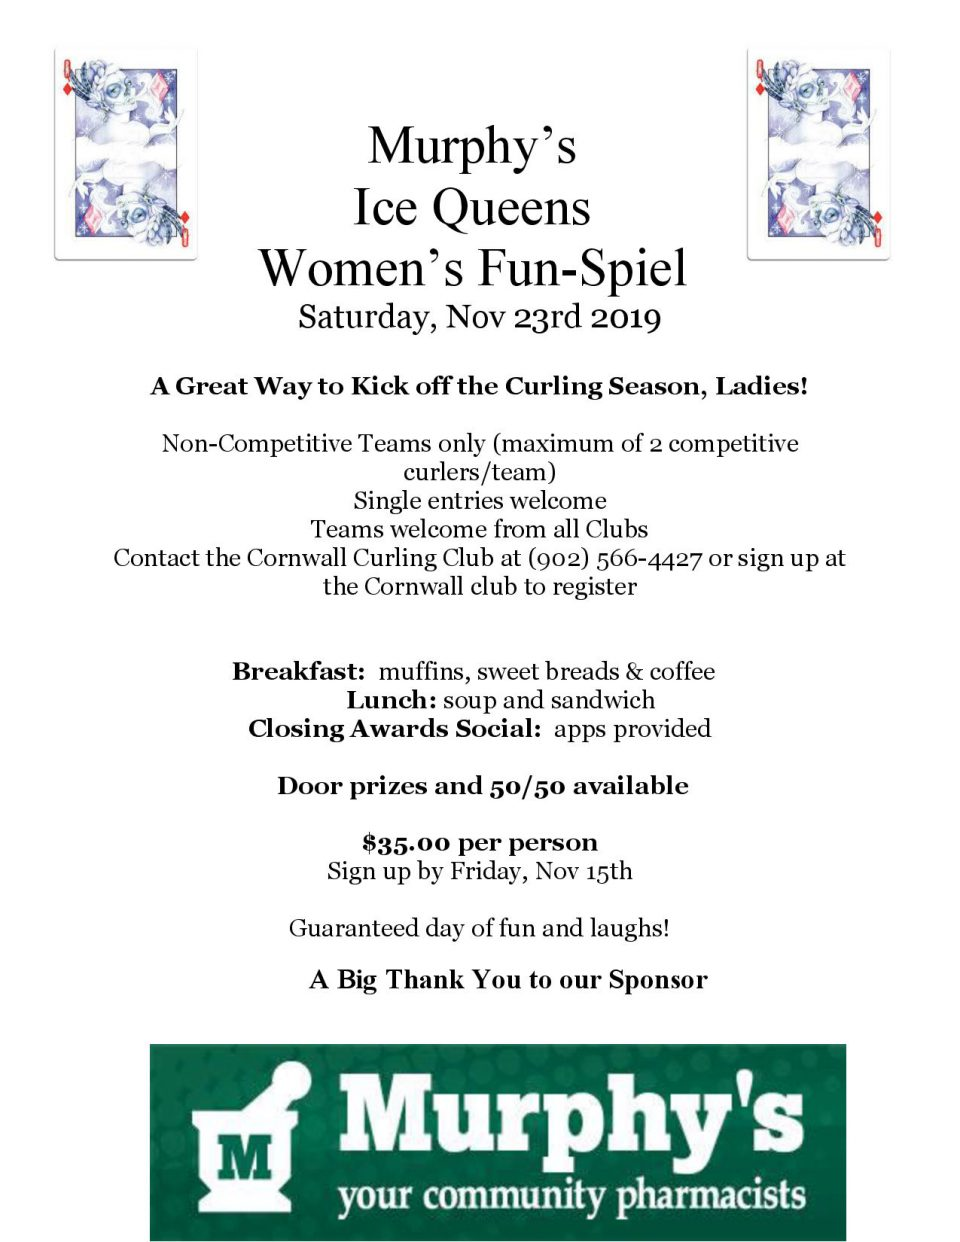 Murphy's Ice Queens Women's Funspiel @ Cornwall Curling Club